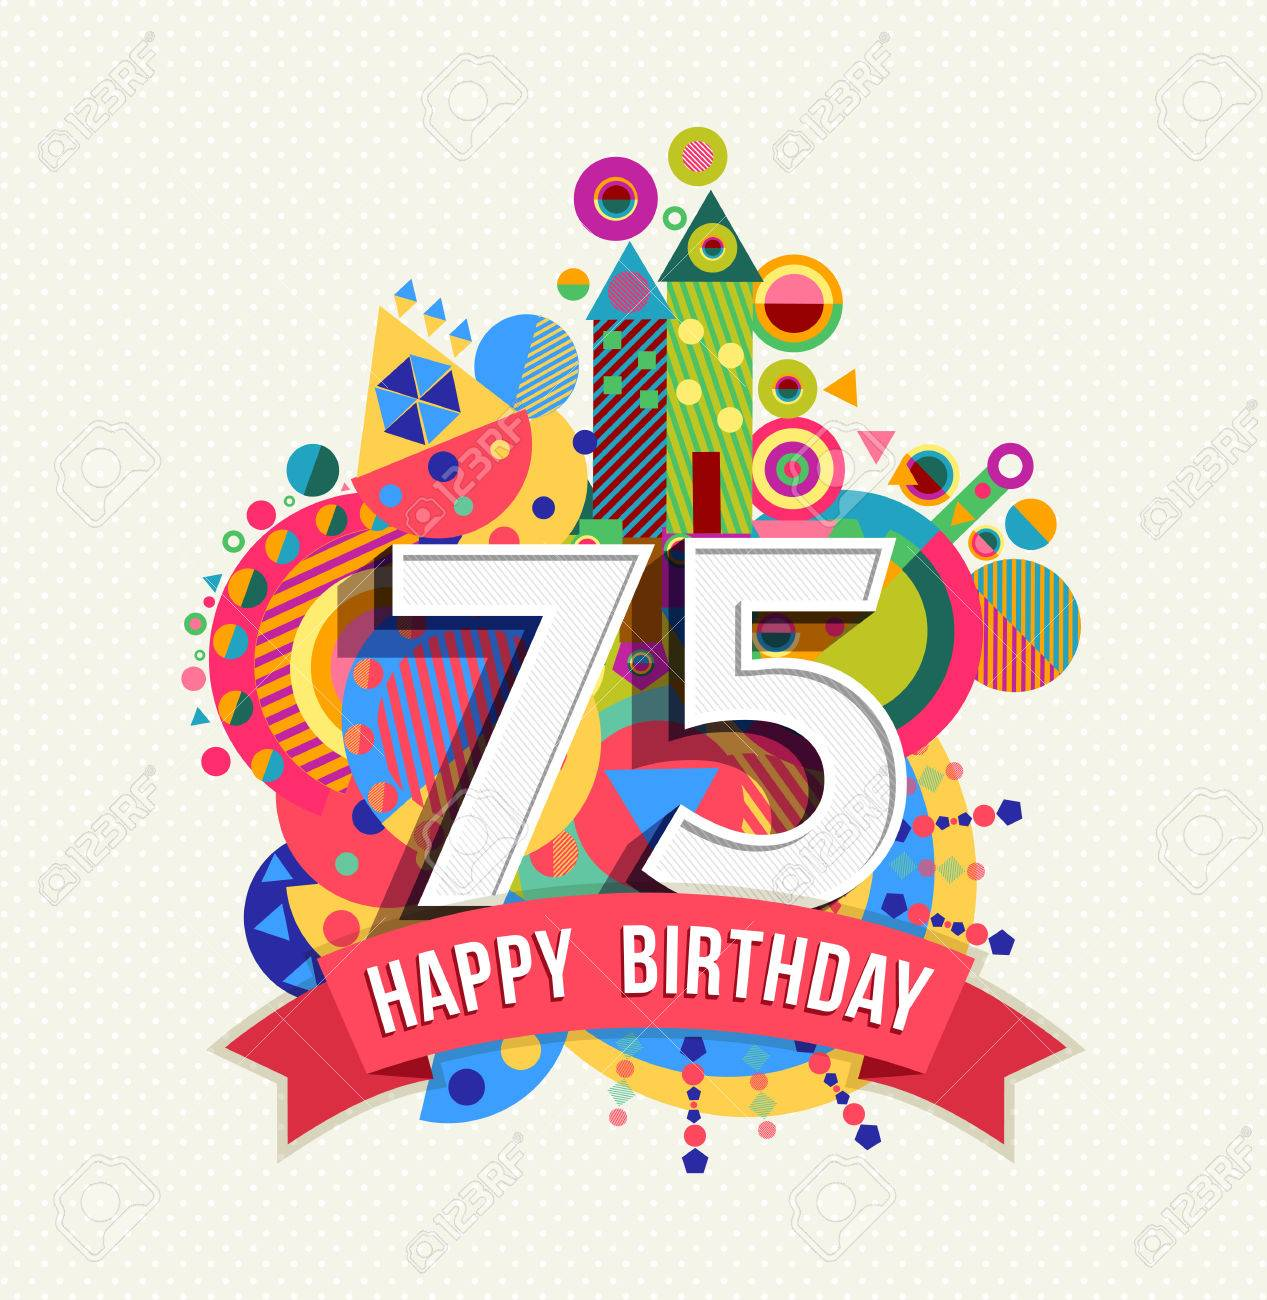 Happy Birthday seventy five 75 year, fun celebration greeting card with number, text label and colorful geometry design. - 51067476